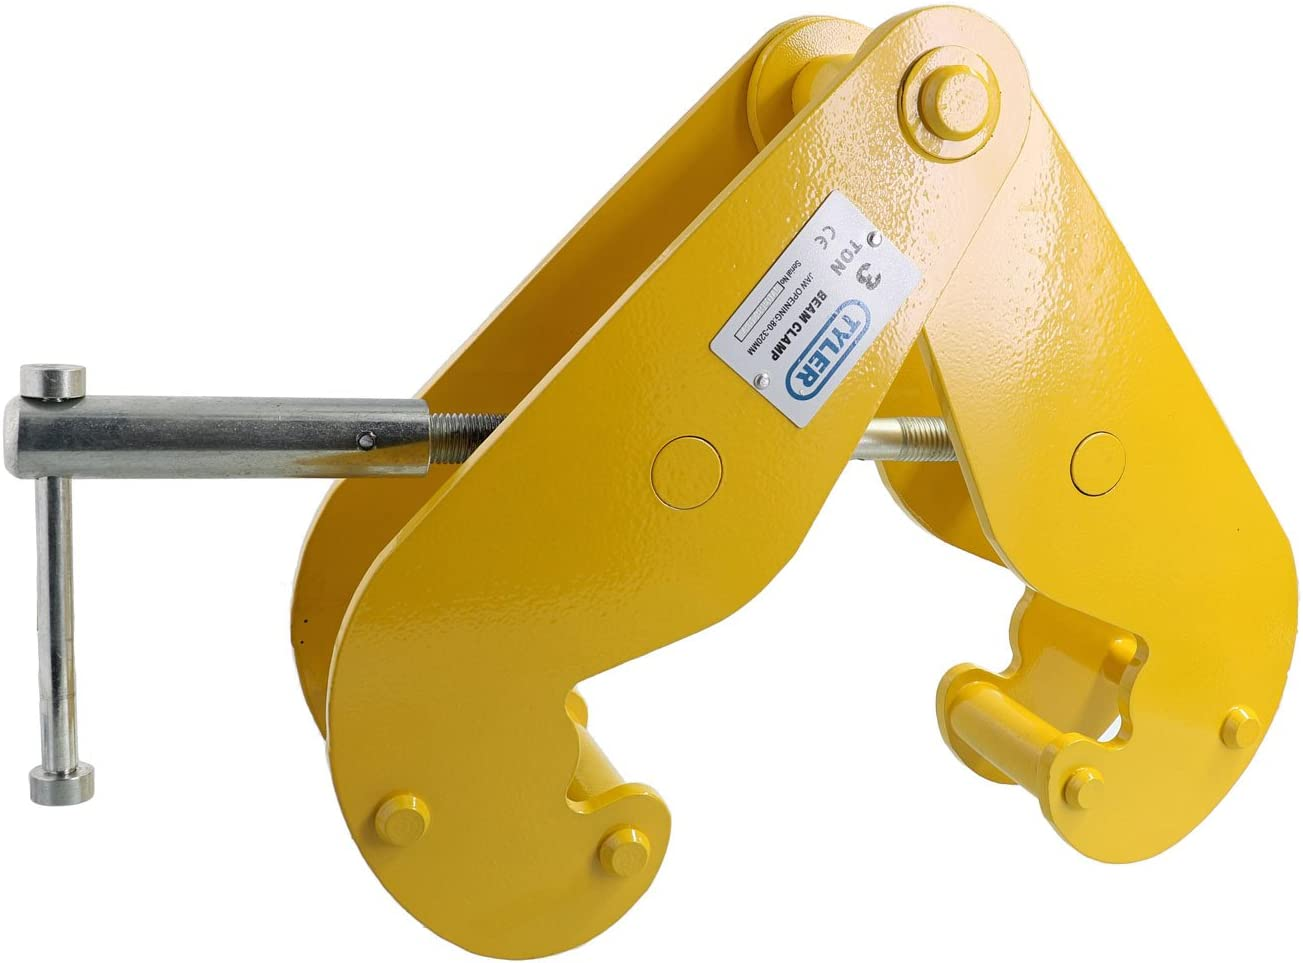 3 Ranking TOP1 Ton Capacity Tyler Clamp Beam Challenge the lowest price Tool